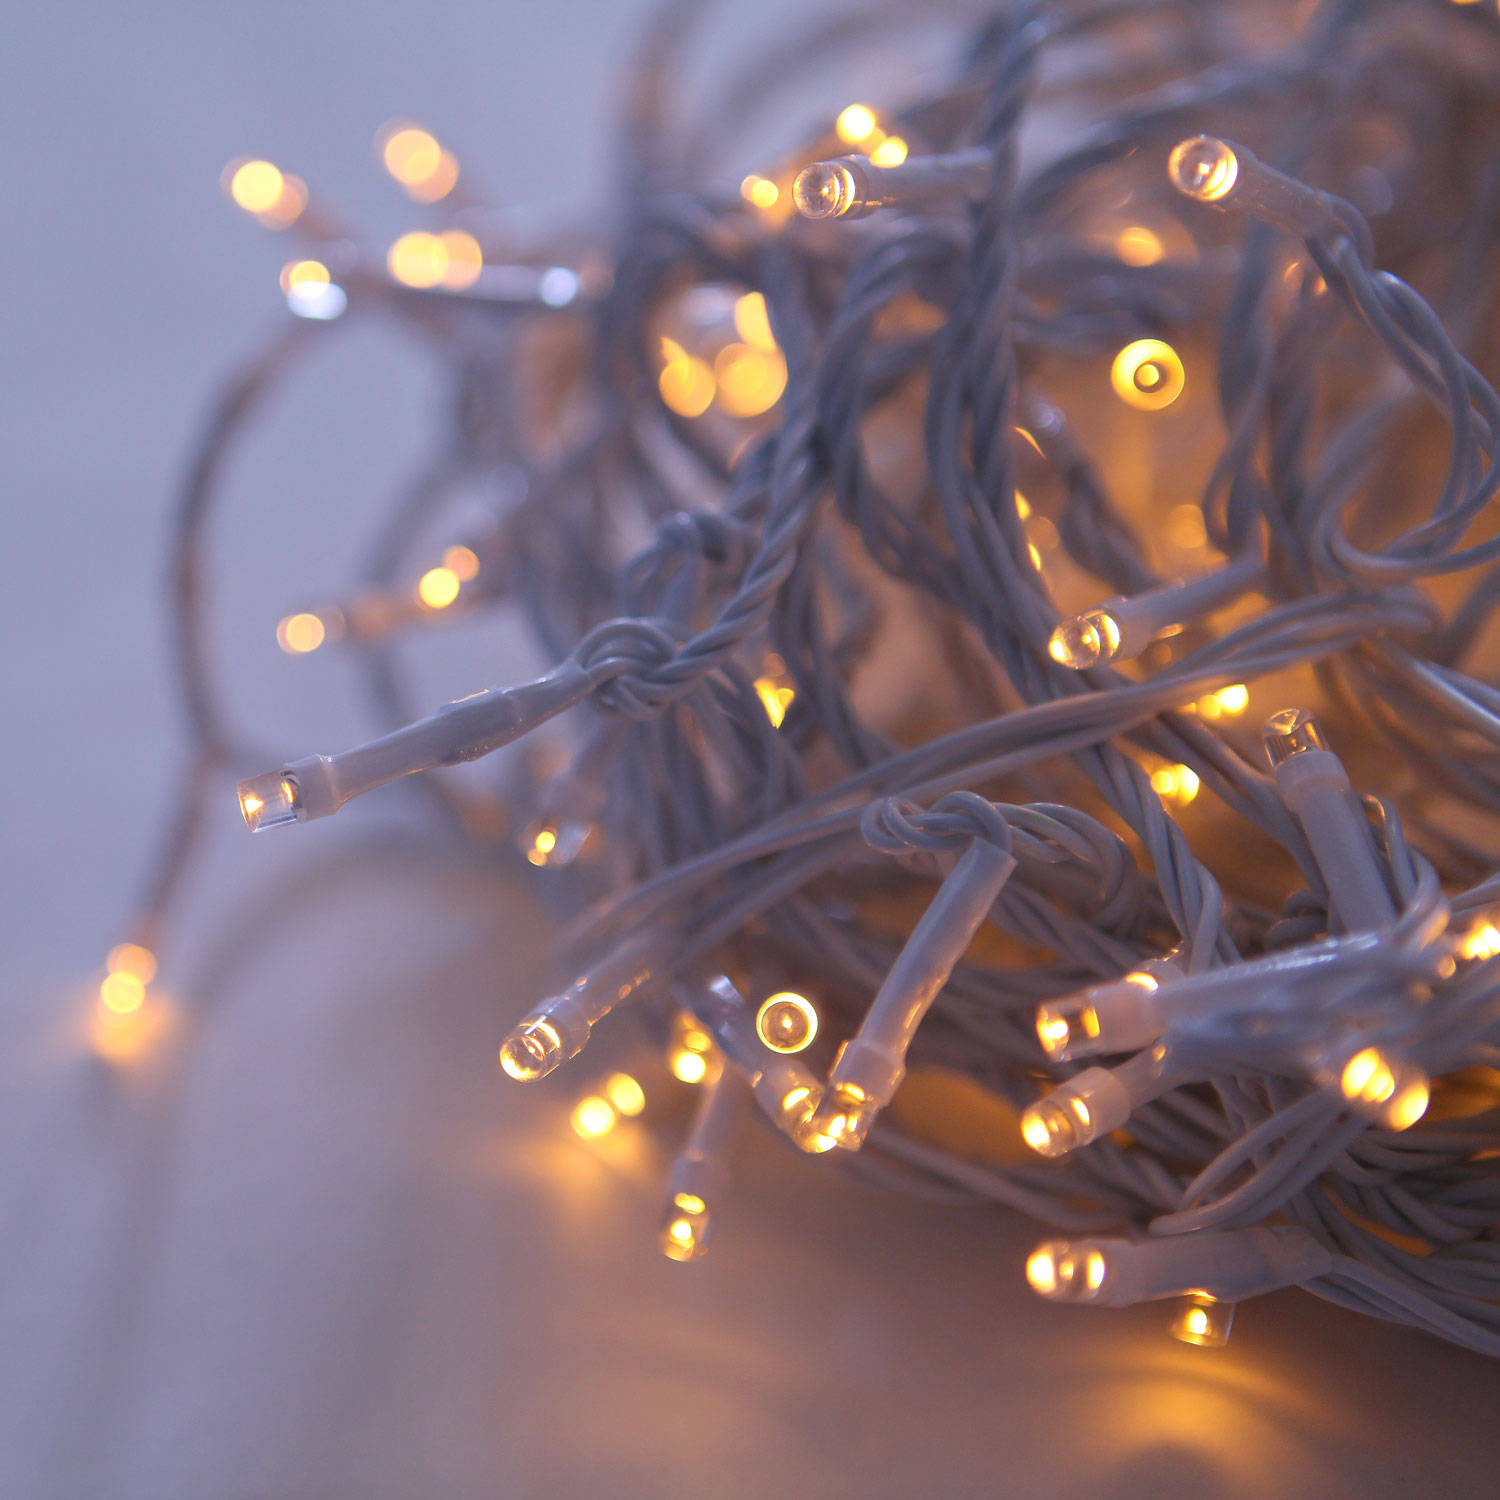 Led String Lights With Battery : Lights.com String Lights Christmas Lights Warm White 200 LED Connectable White Cable ...